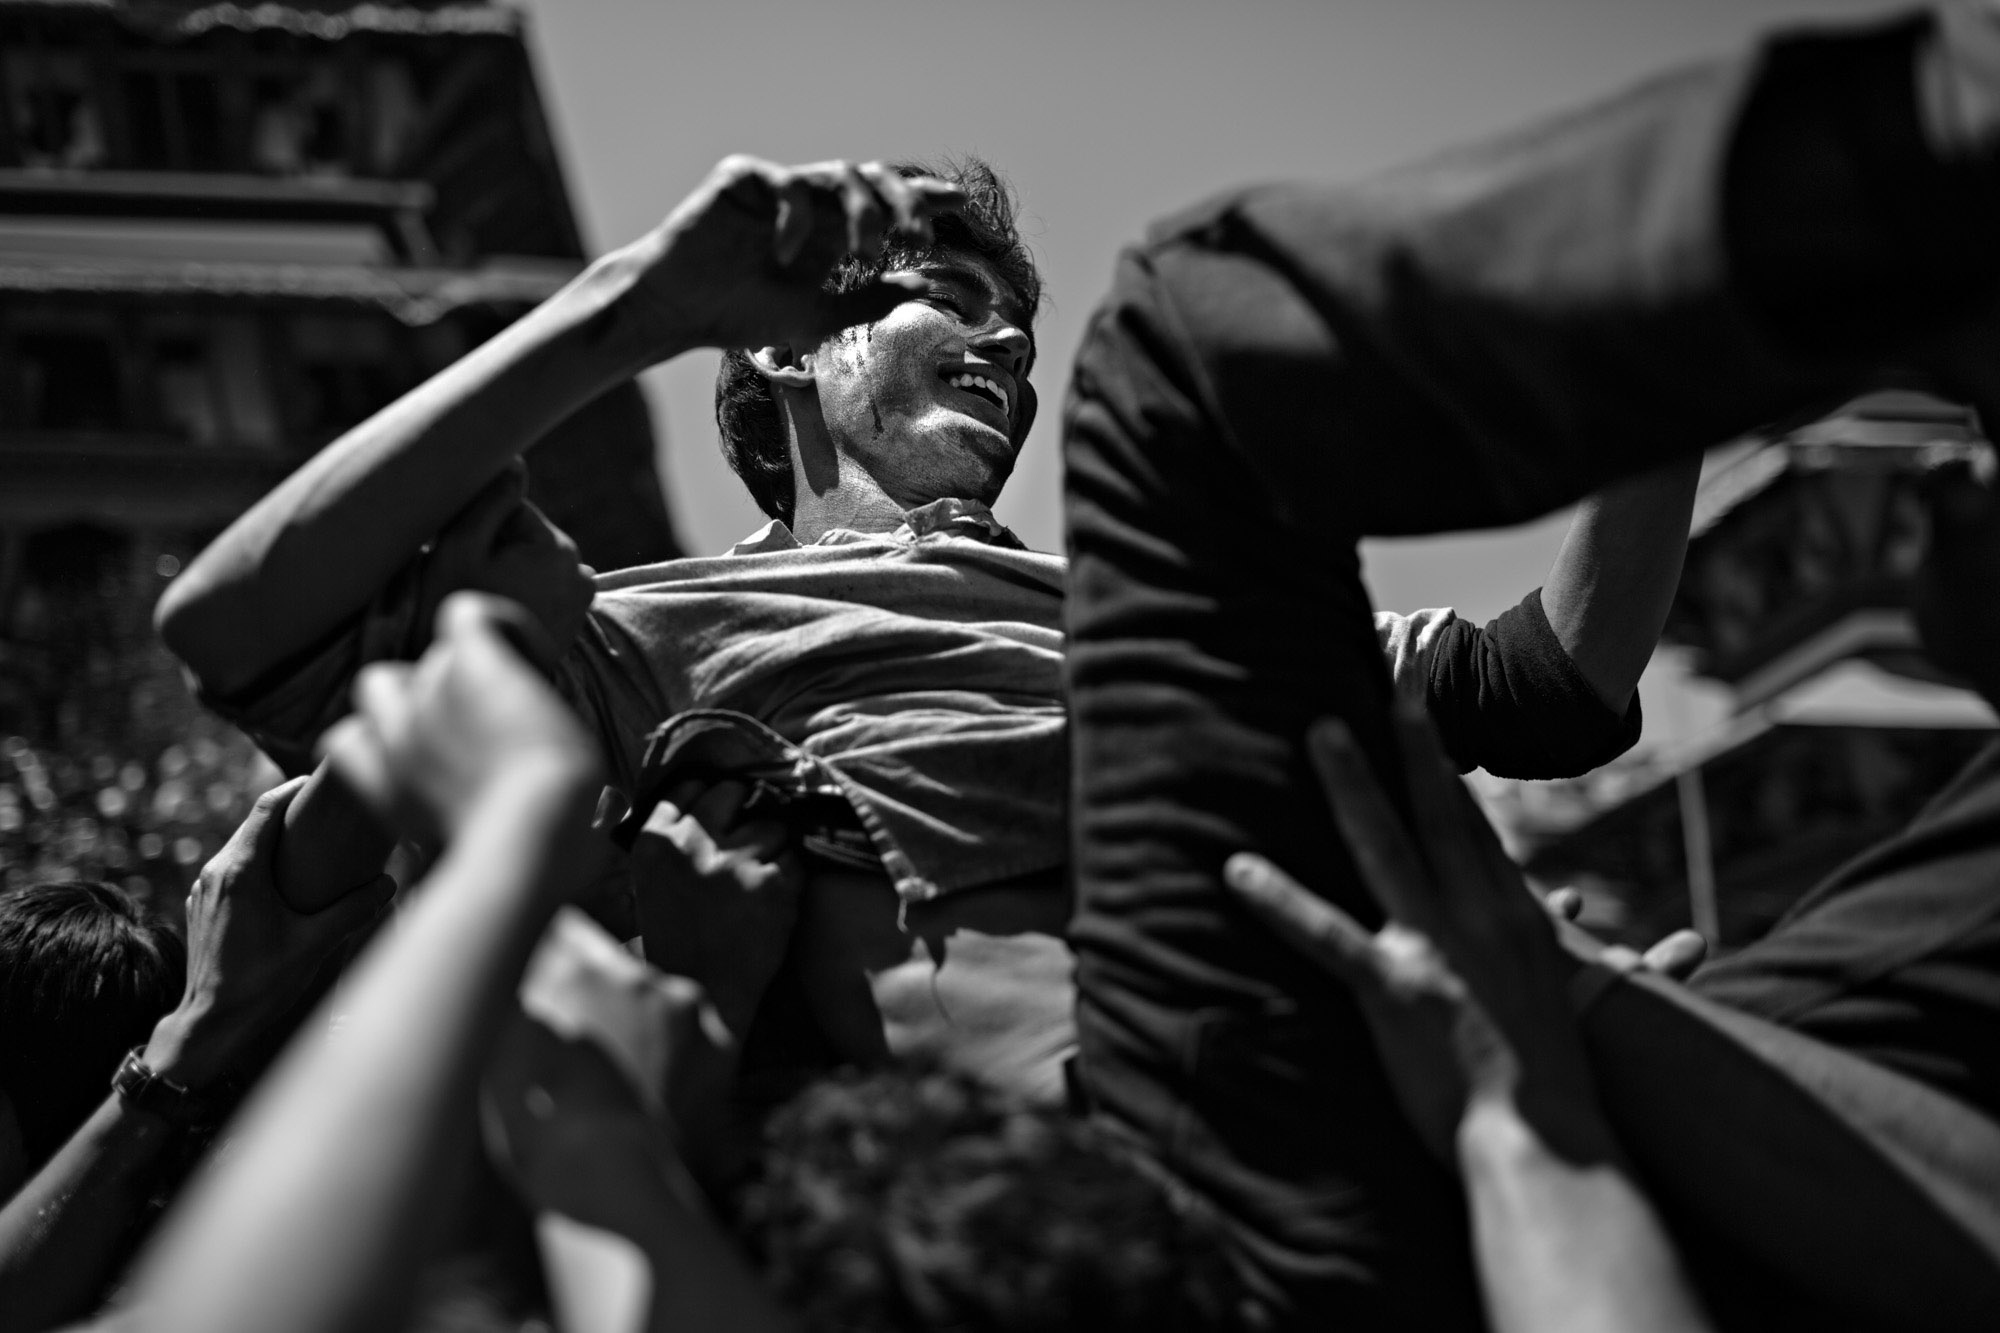 A young boy crowdsurfs during an outdoor party in Kathmandu's durbar square.